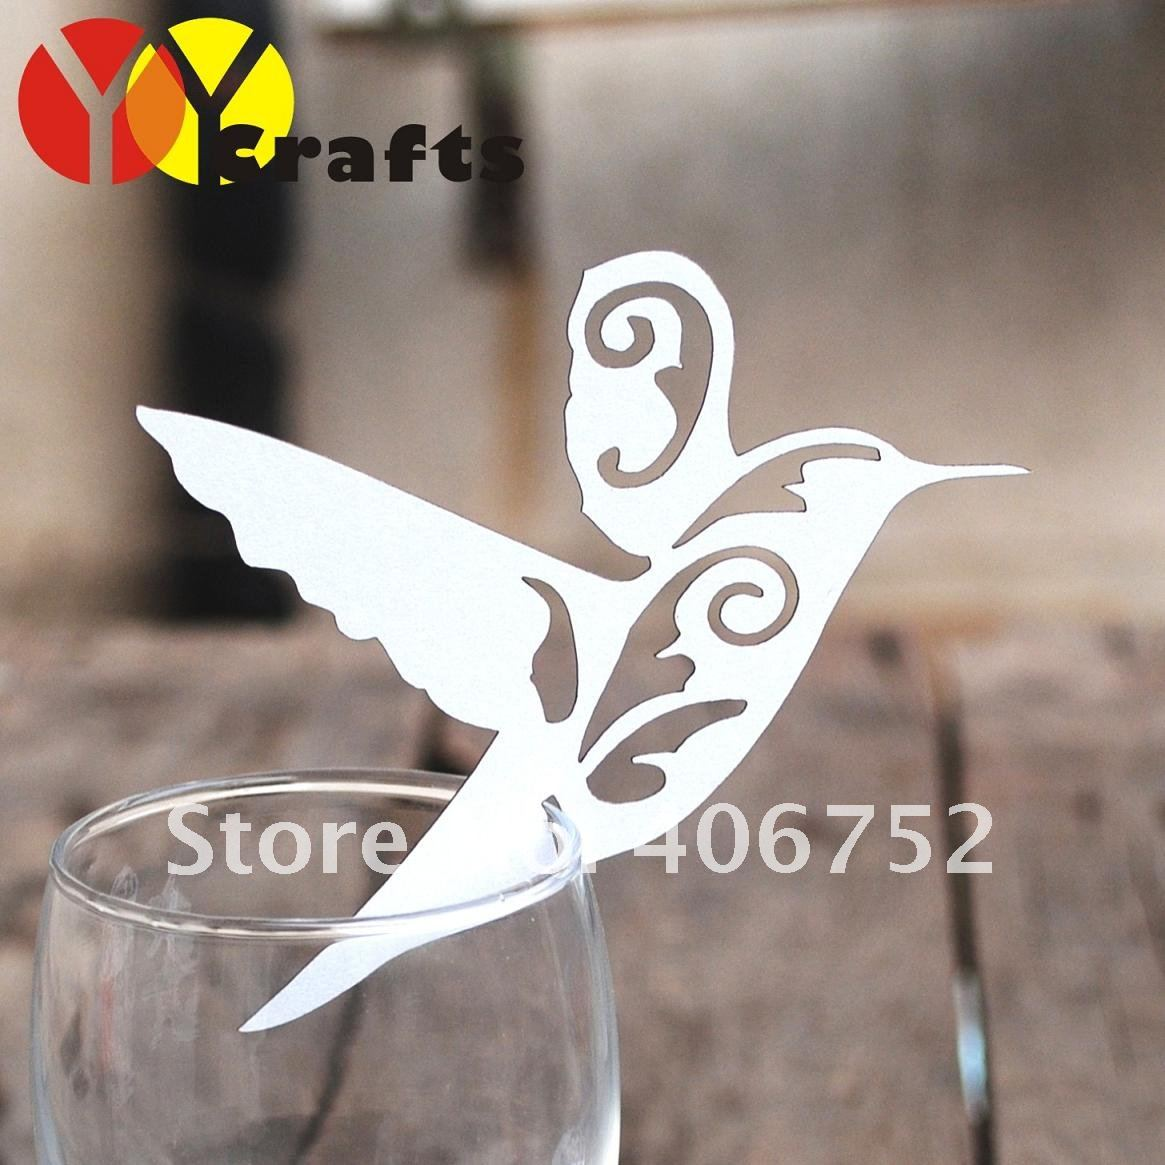 High quality best sell various designs laser cut glass vase place we are one of the most professional manufacturers in china and produce all kind of cupcake wrapperswedding boxgift casescupcake linersplace cardseat reviewsmspy